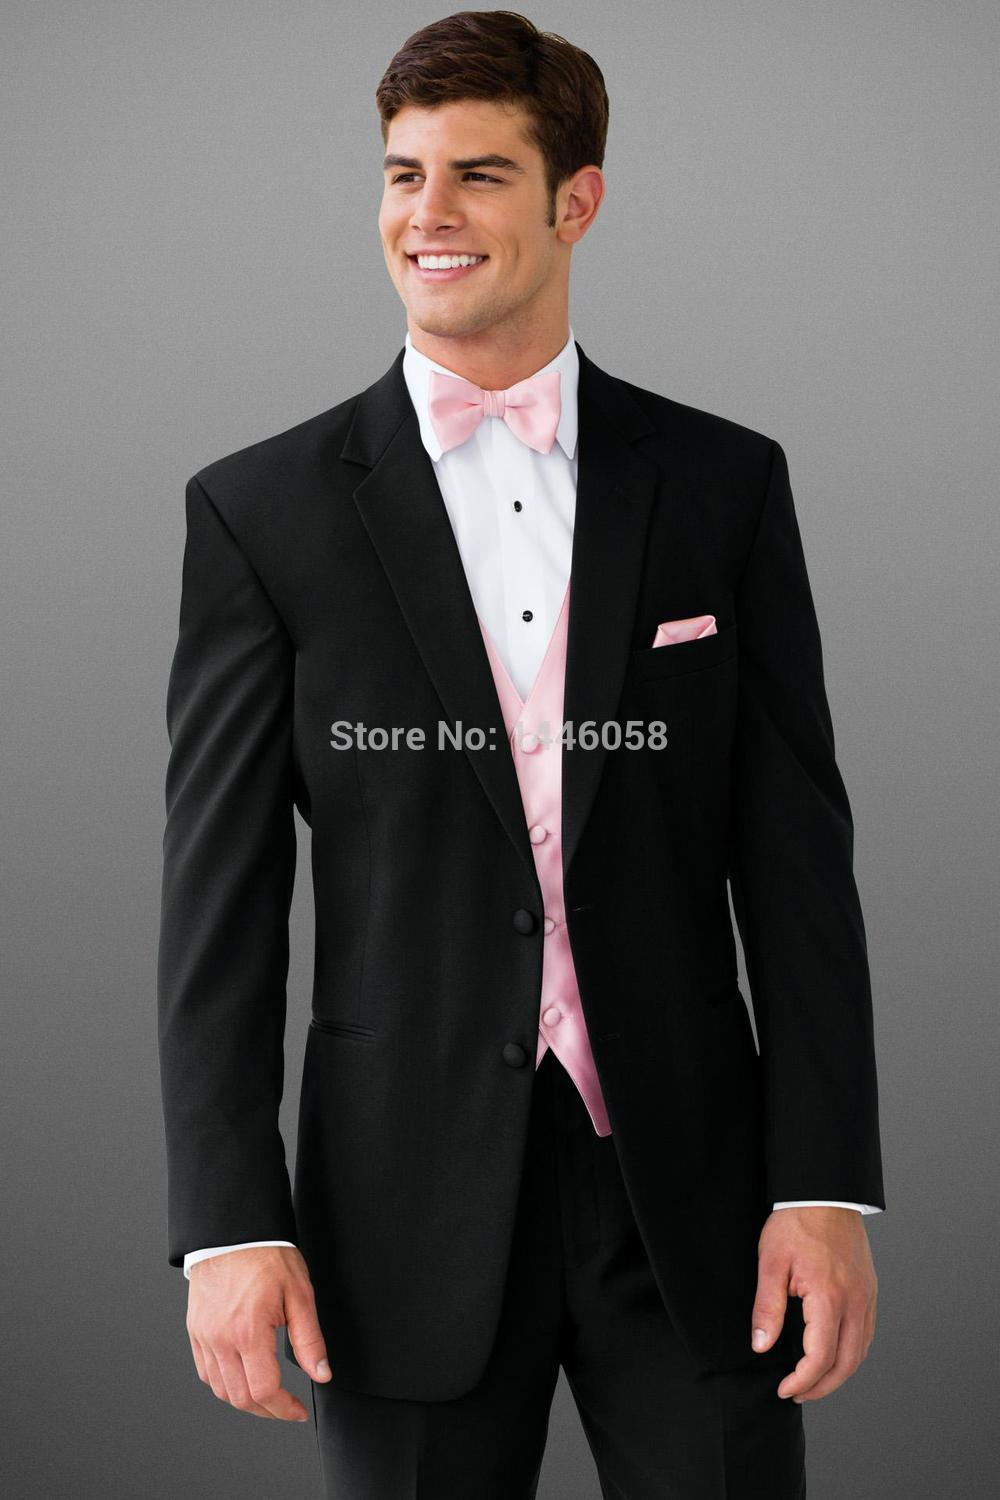 Pink and Black Wedding Tuxedos | Dress images